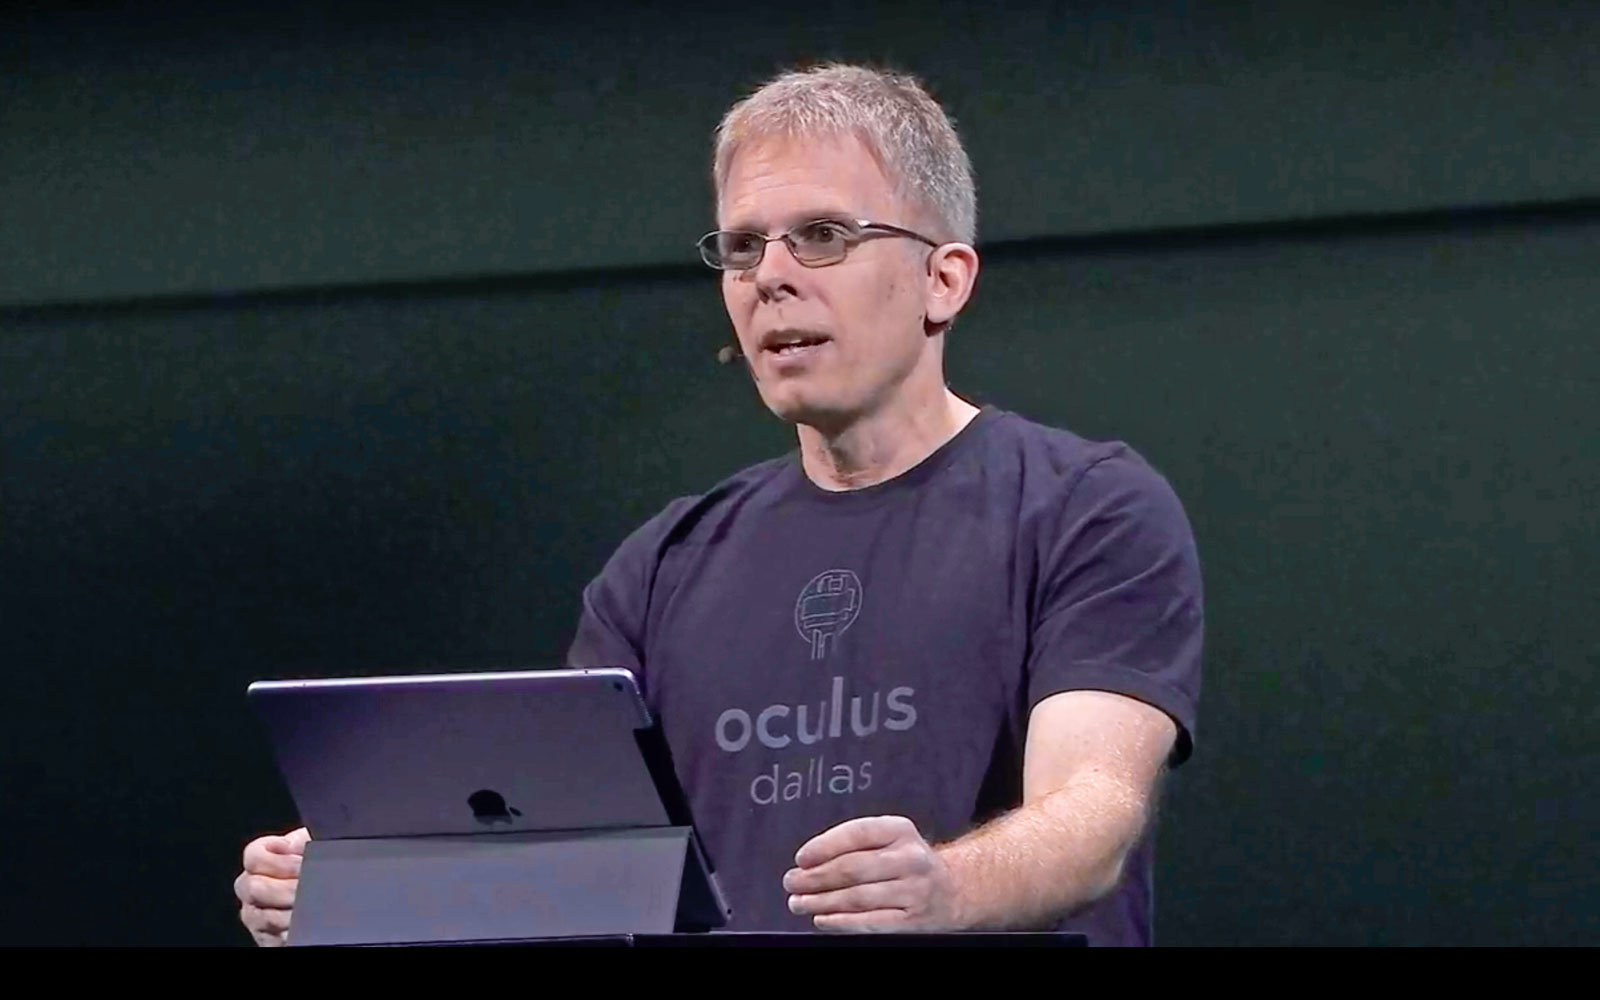 Oculus CTO John Carmack to Step Down